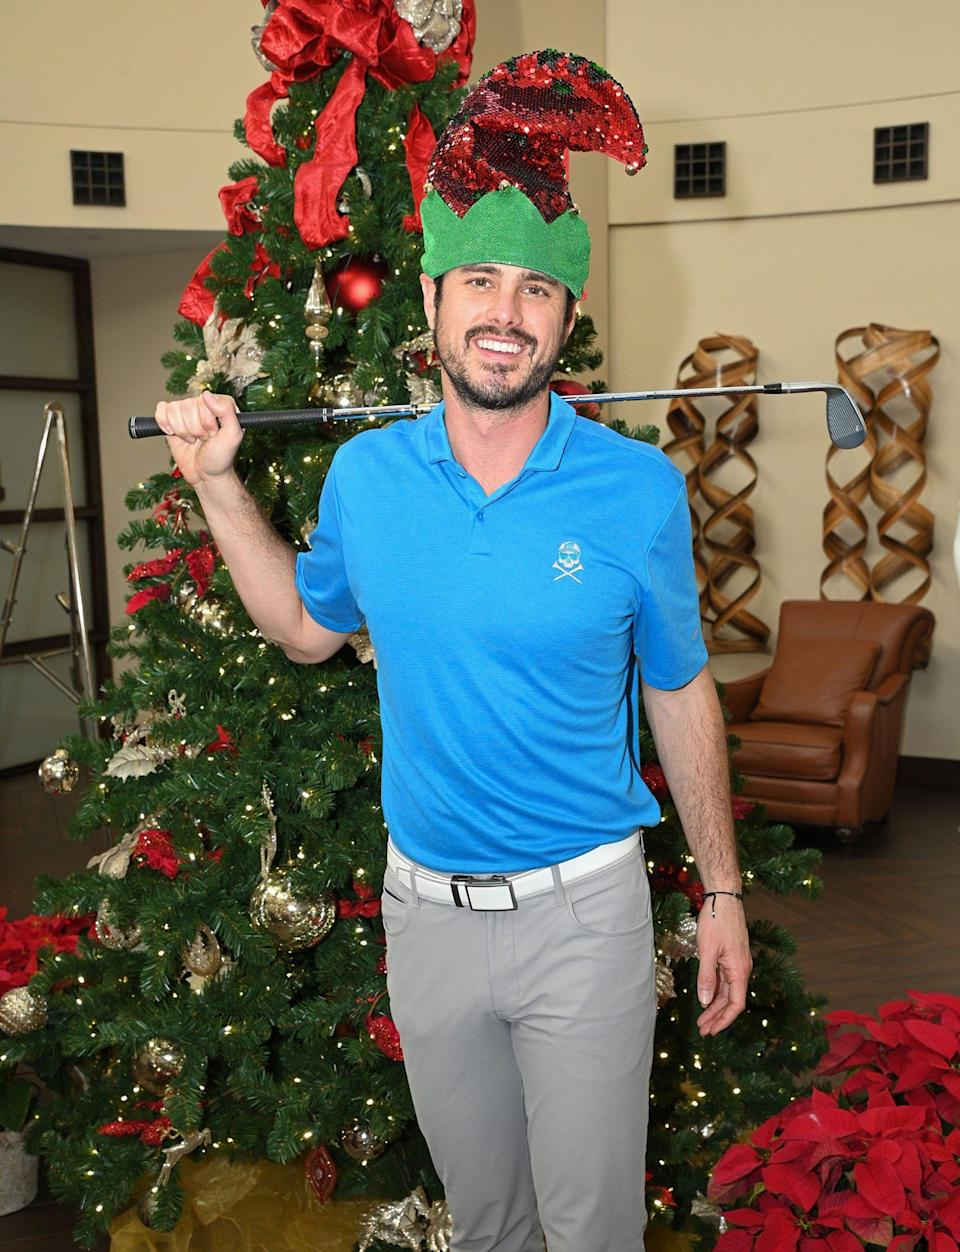 <p><em>The Bachelor</em>'s Ben Higgins shows off his sporty side during a press conference for next month's Diamond Resorts Tournament of Champions golf event in Lake Buena Vista, Florida.</p>